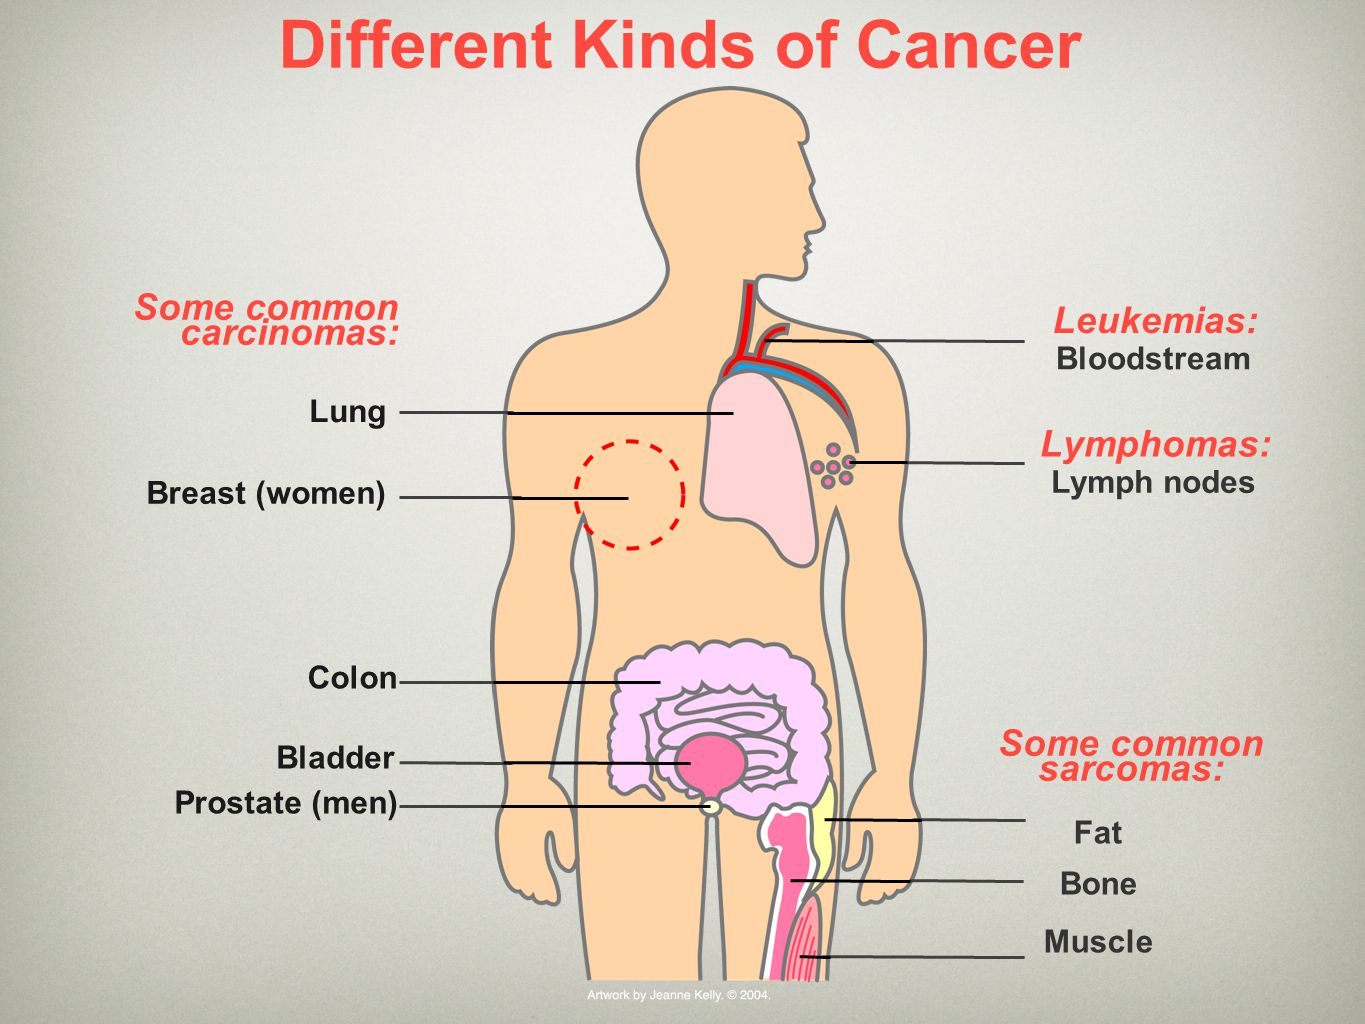 Different Kinds of Cancer Fat Bone Muscle Lymphomas: Leukemias: Some common carcinomas: Lung Breast (women) Colon Prostate (men) Bladder Lymph nodes B